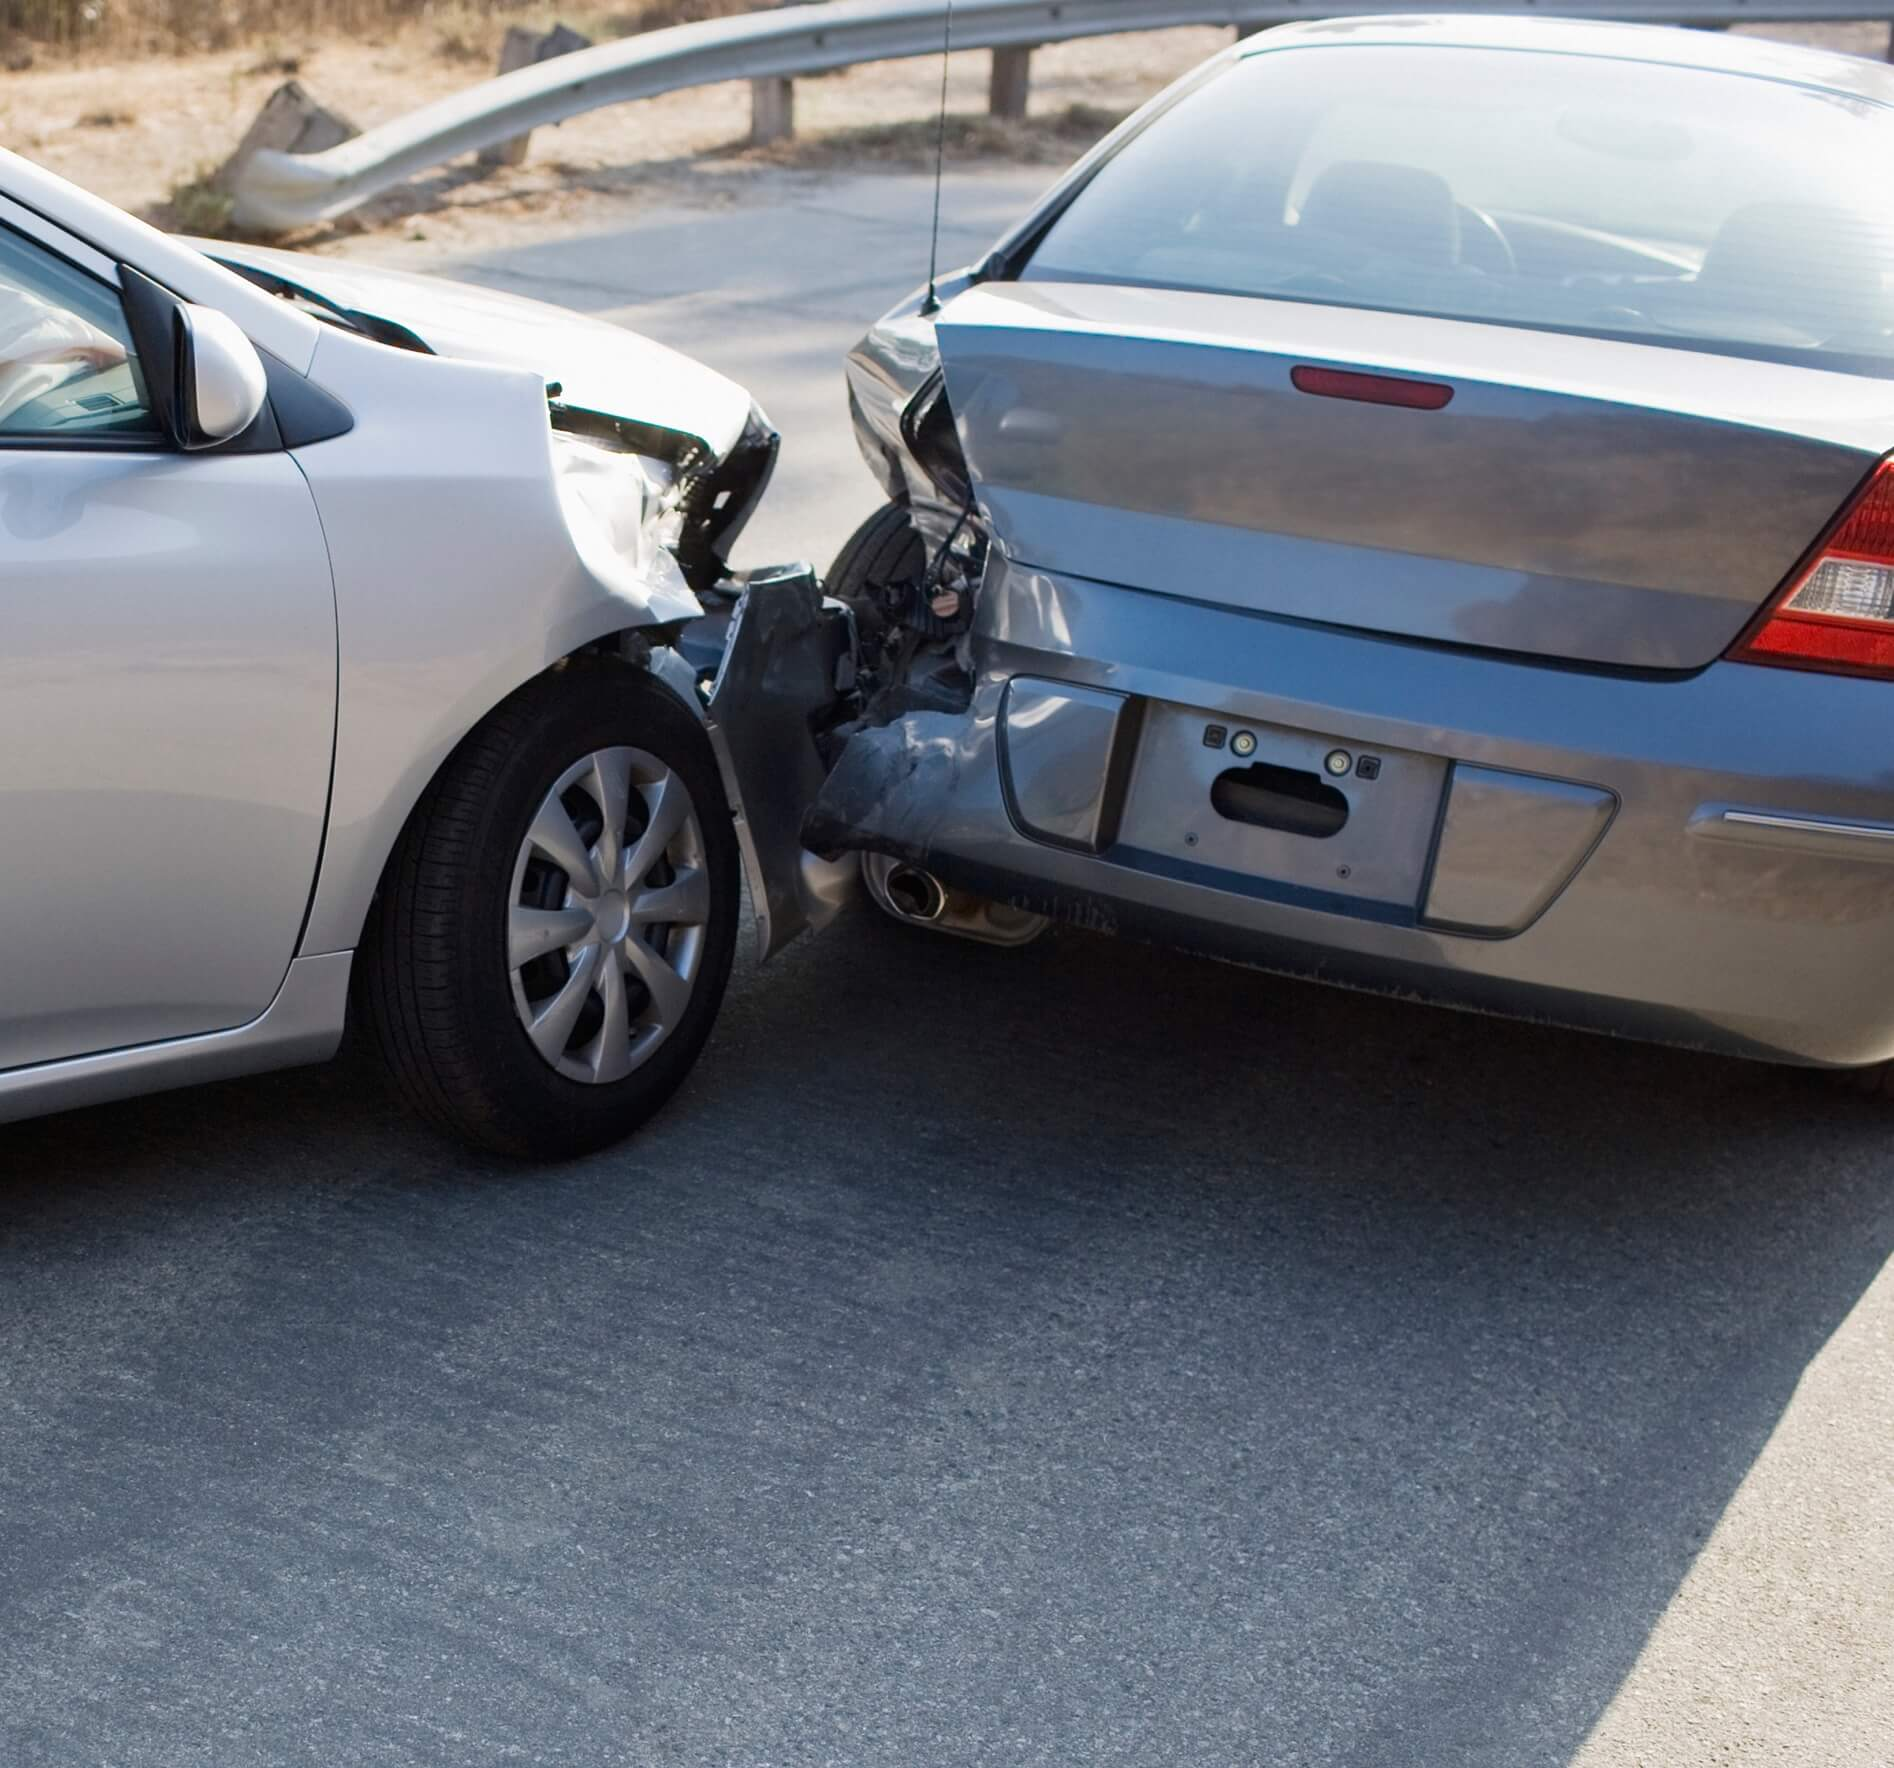 Vehicle Accident Lawyer Miami